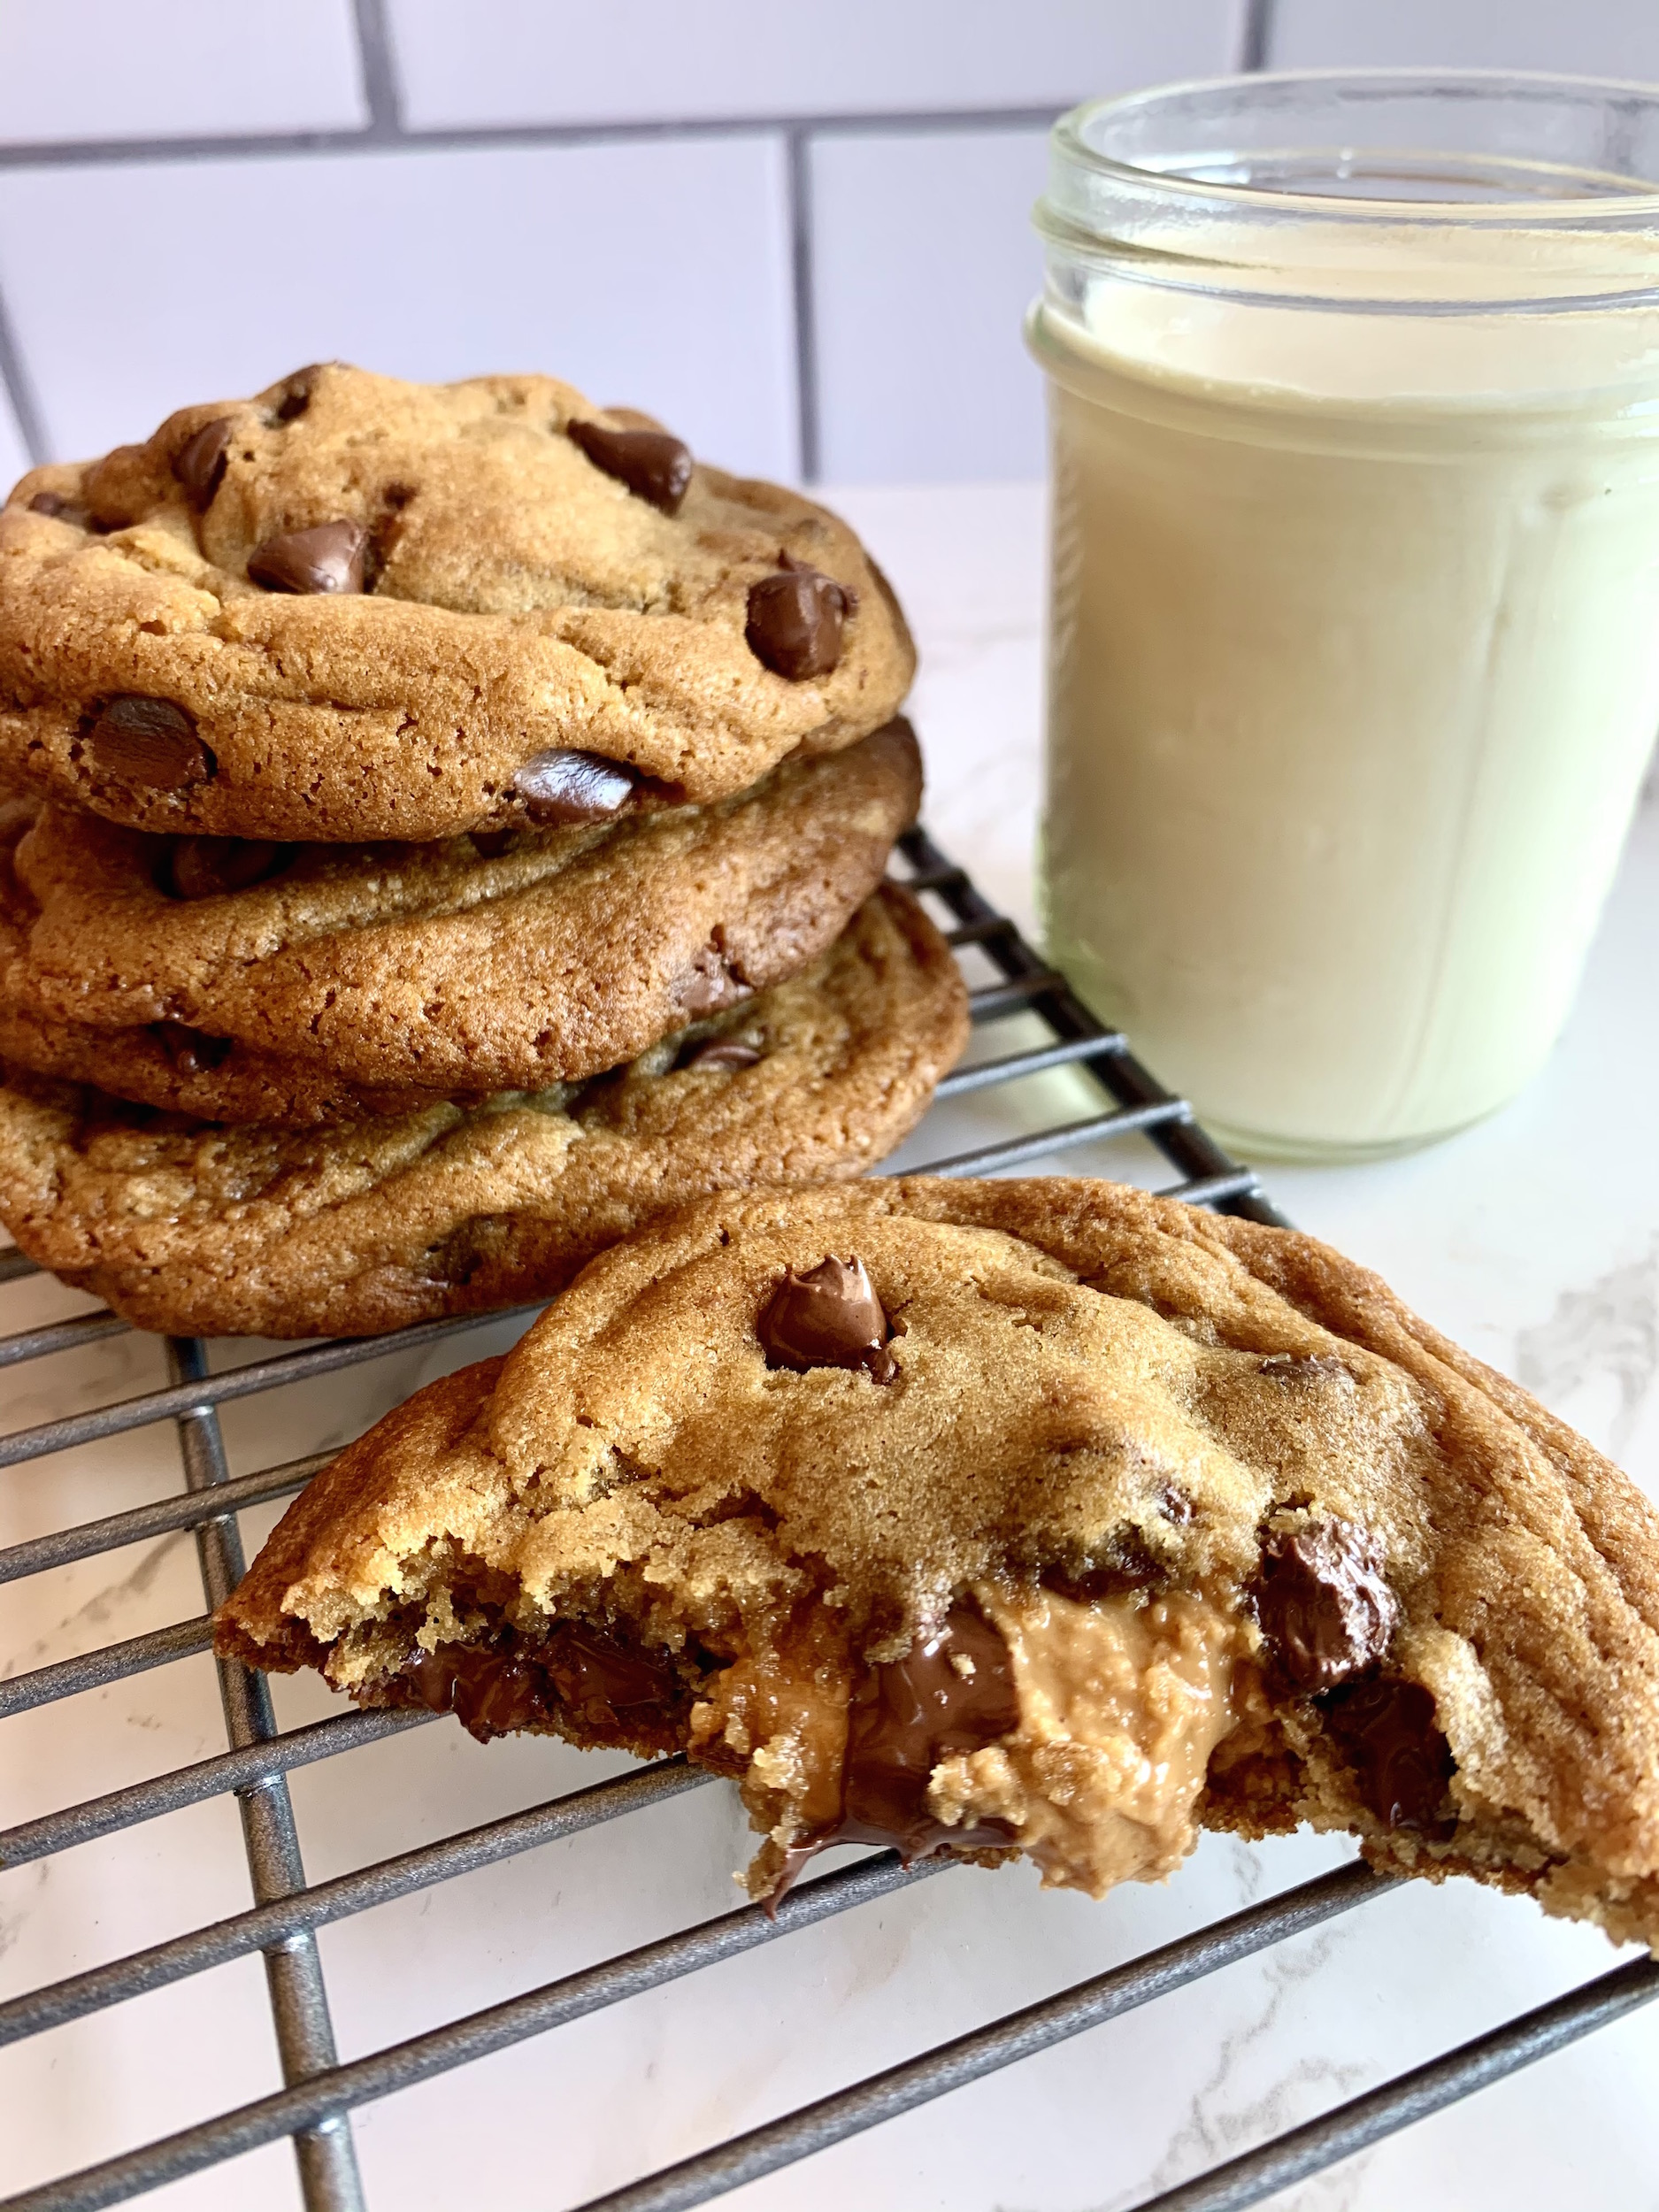 Peanut butter stuffed chocolate chip cookie with stack of cookies and glass of milk